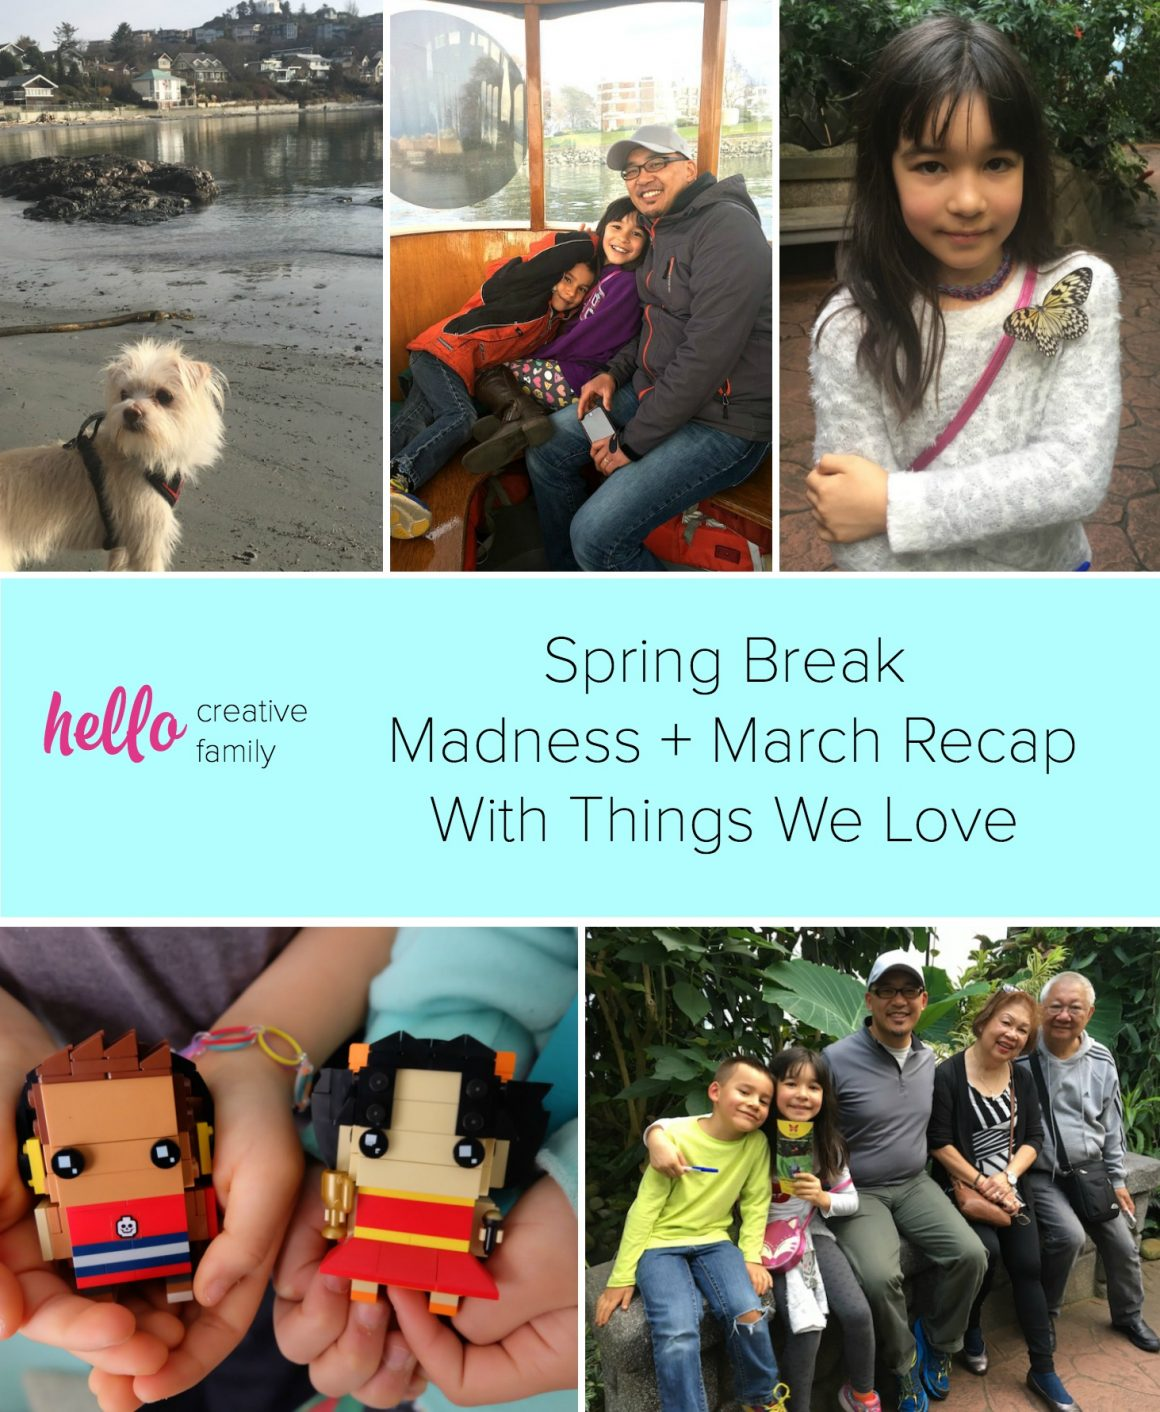 This year's spring break included a family trip to Victoria! Read about the adventures that Hello Creative Family had while travelling in BC along with Crystal's picks for things she loved in March!